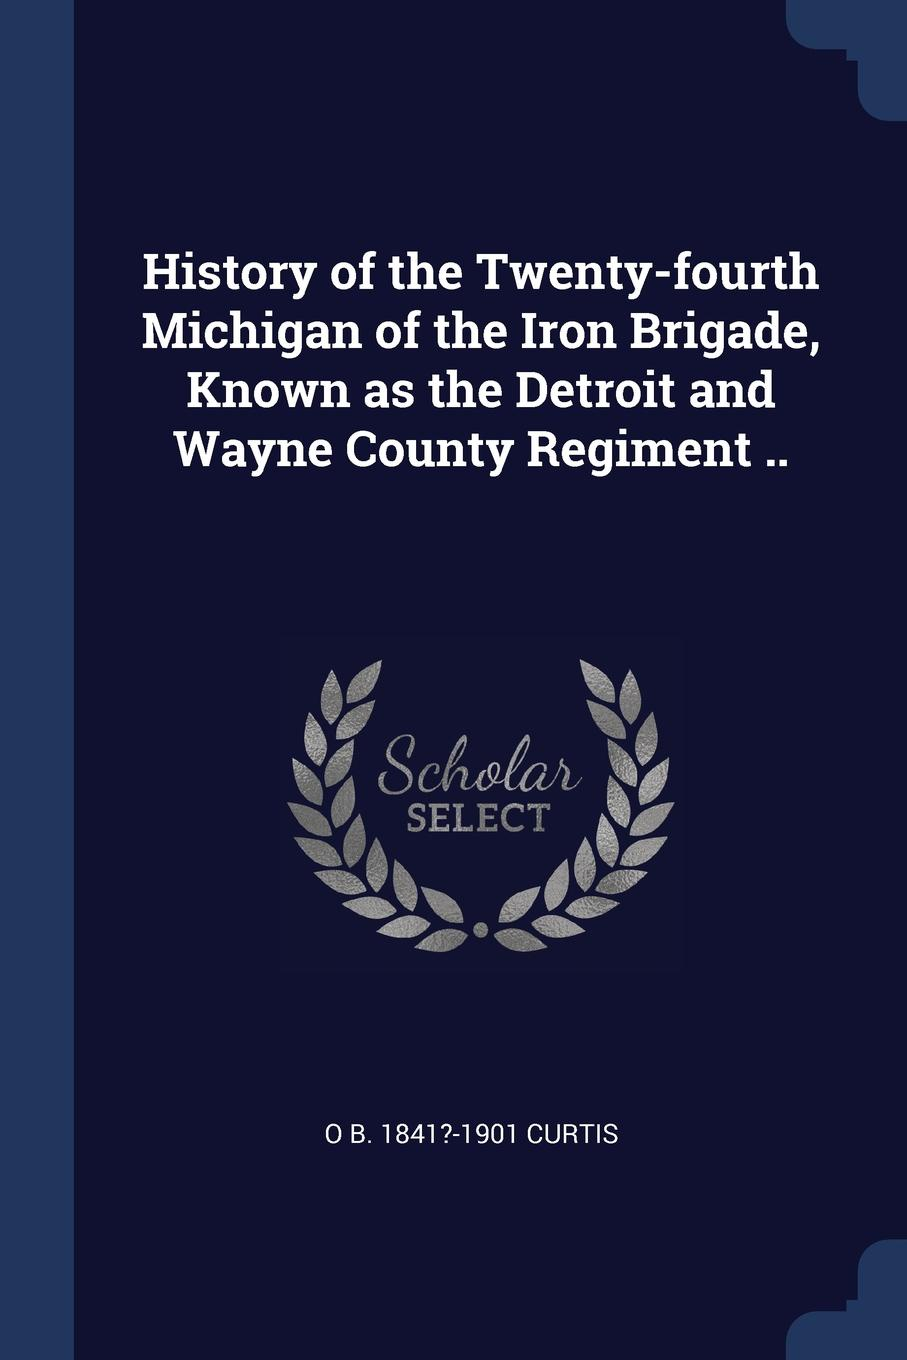 History of the Twenty-fourth Michigan of the Iron Brigade, Known as the Detroit and Wayne County Regiment ..